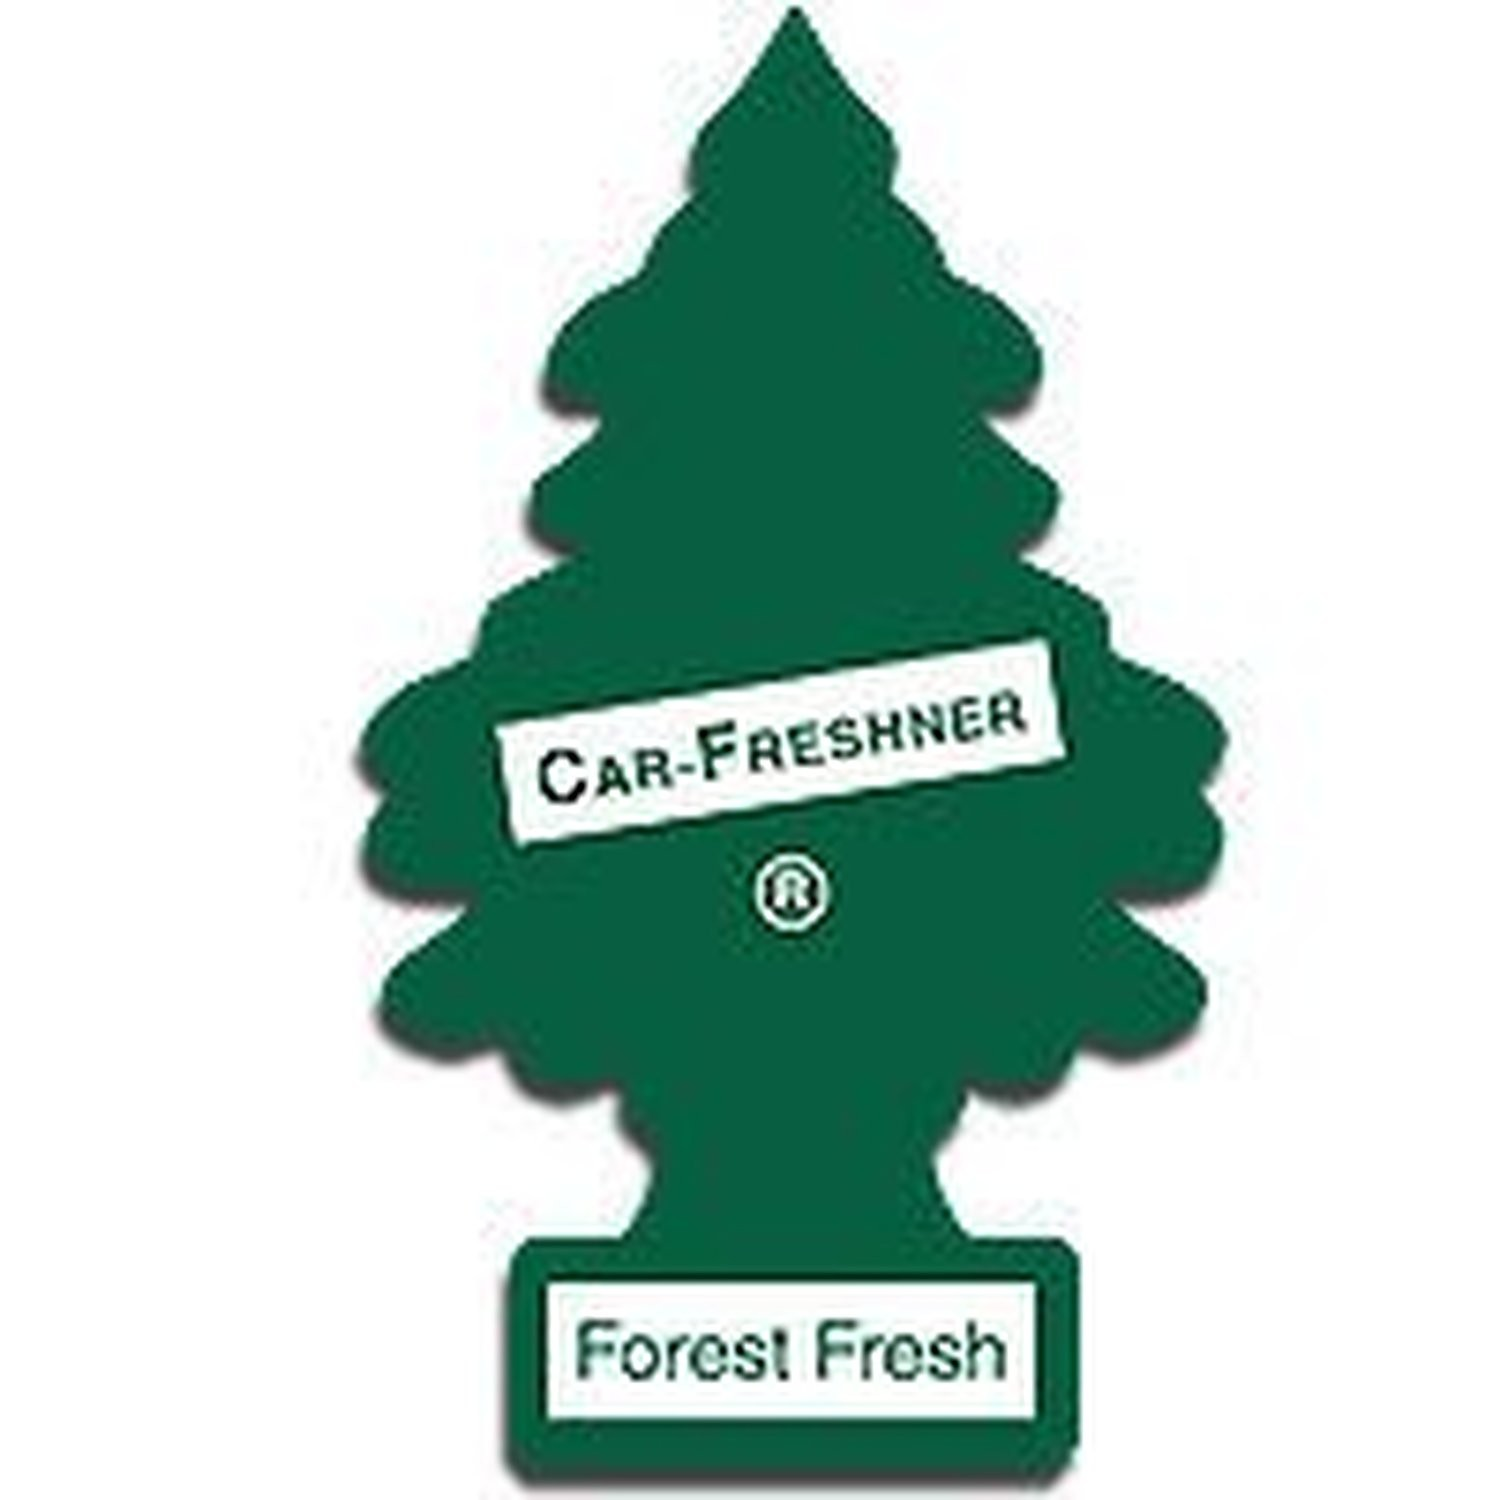 AoE Performance Magic Tree Car Air Freshener Duo Gift Pack Forest Fresh And Peach